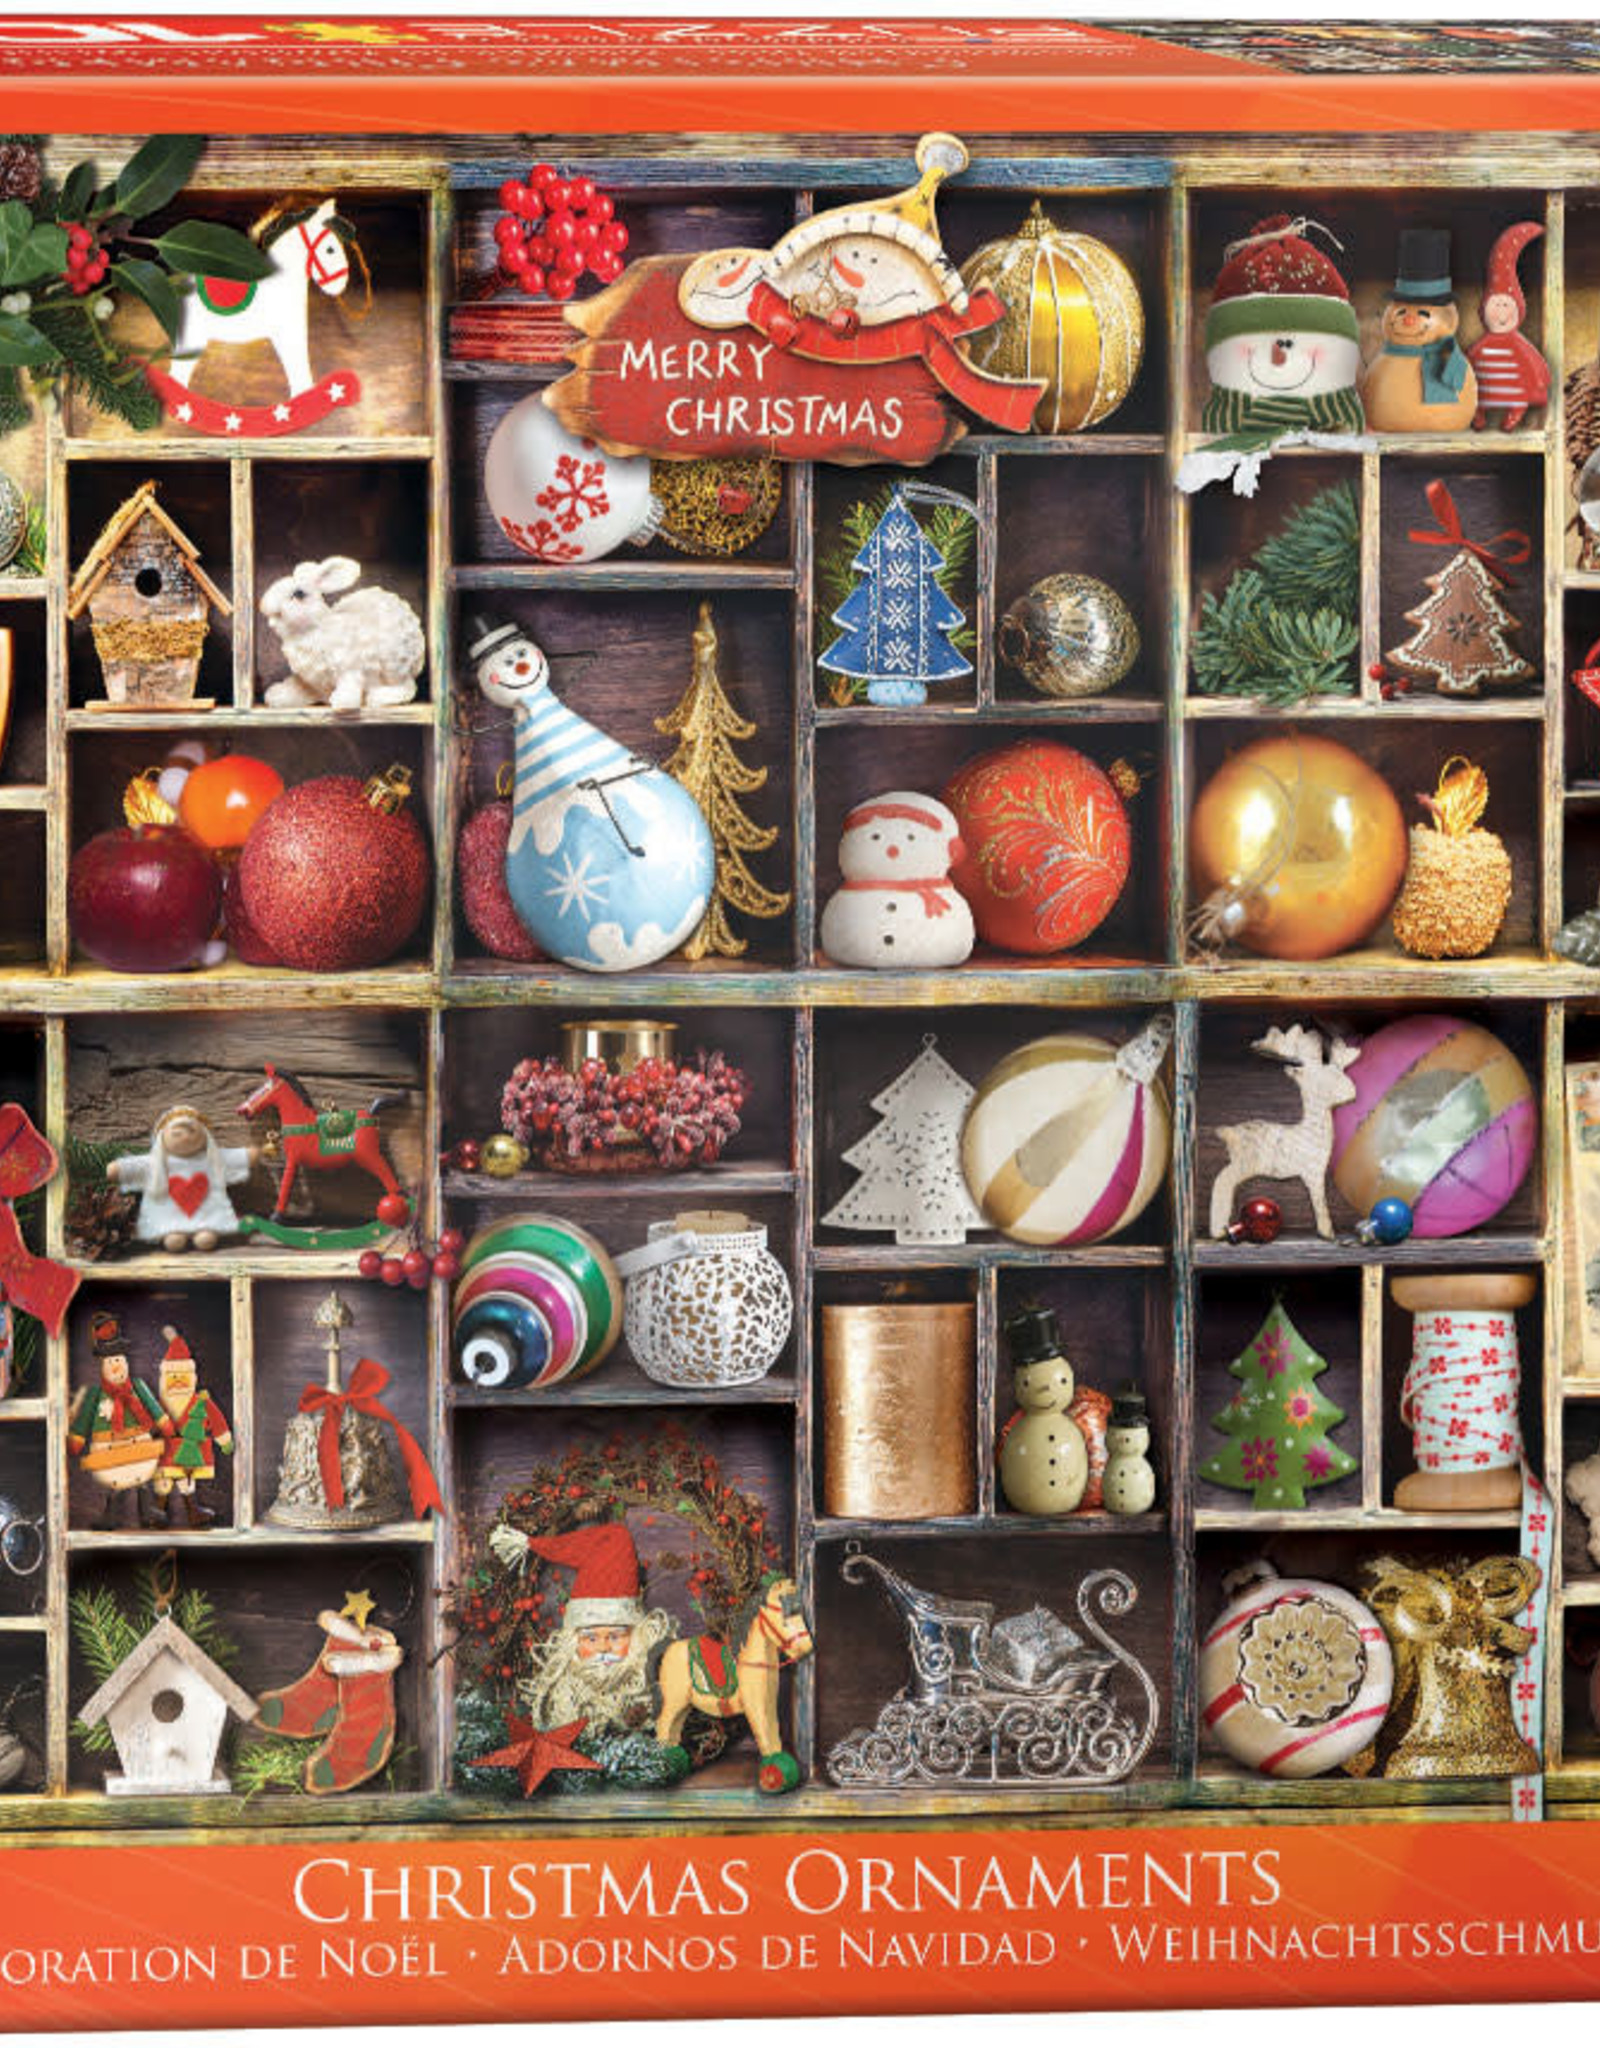 Eurographics Inc Christmas Ornaments 1000pc Puzzle